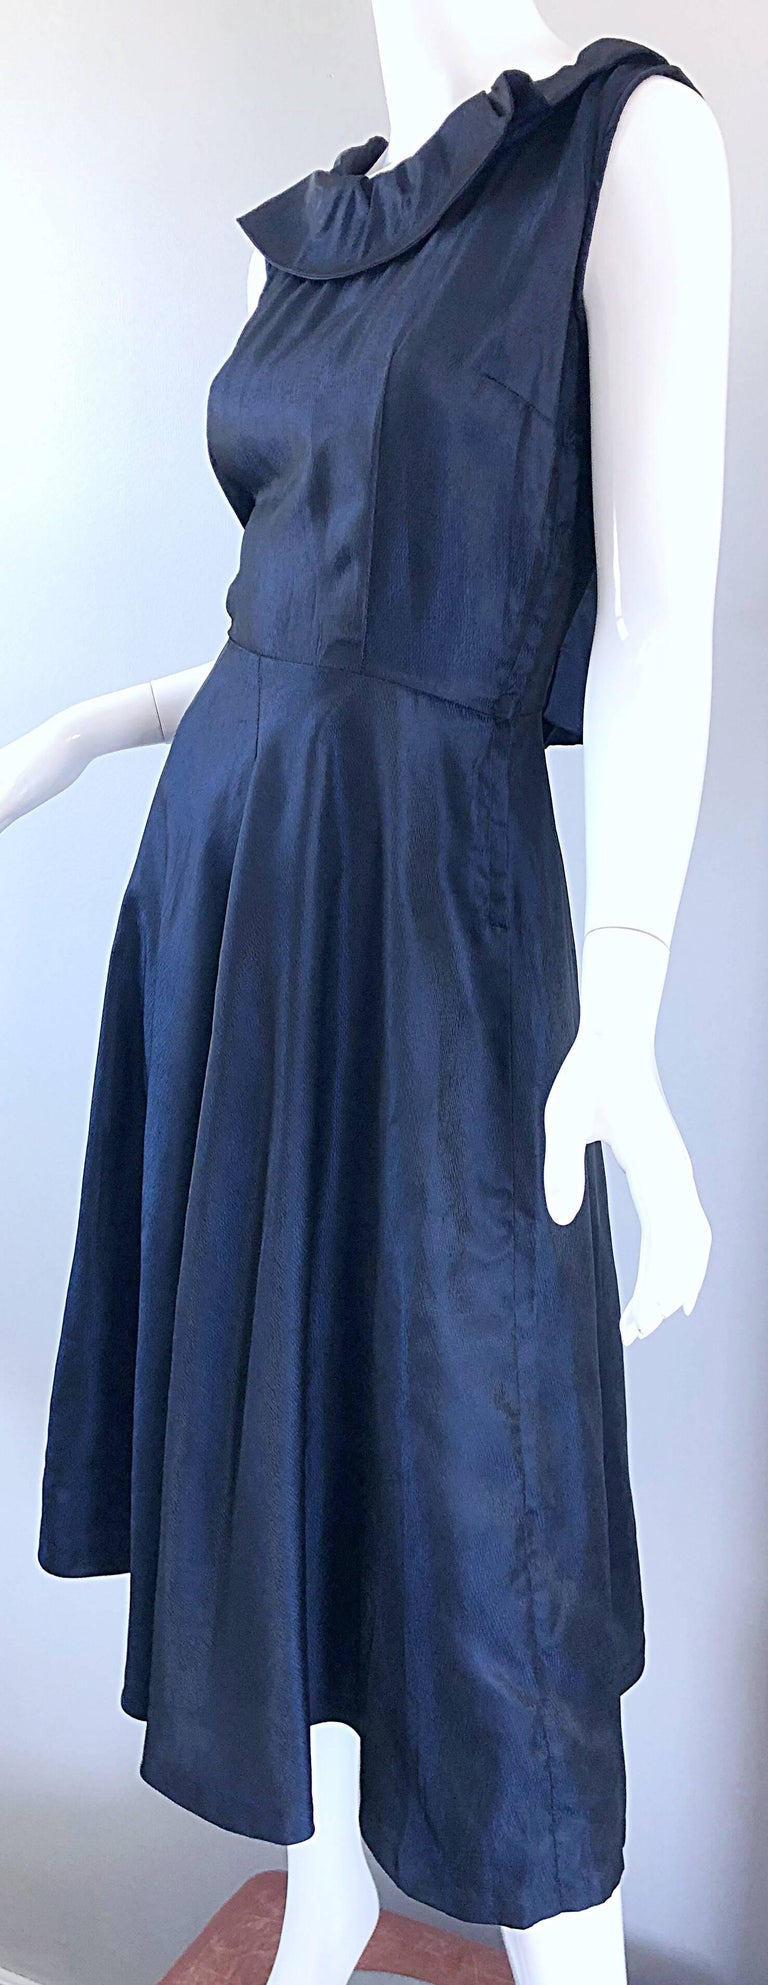 1950s Navy Midnight Blue Fit n ' Flare Vintage 50s Demi Couture Silk Dress For Sale 6